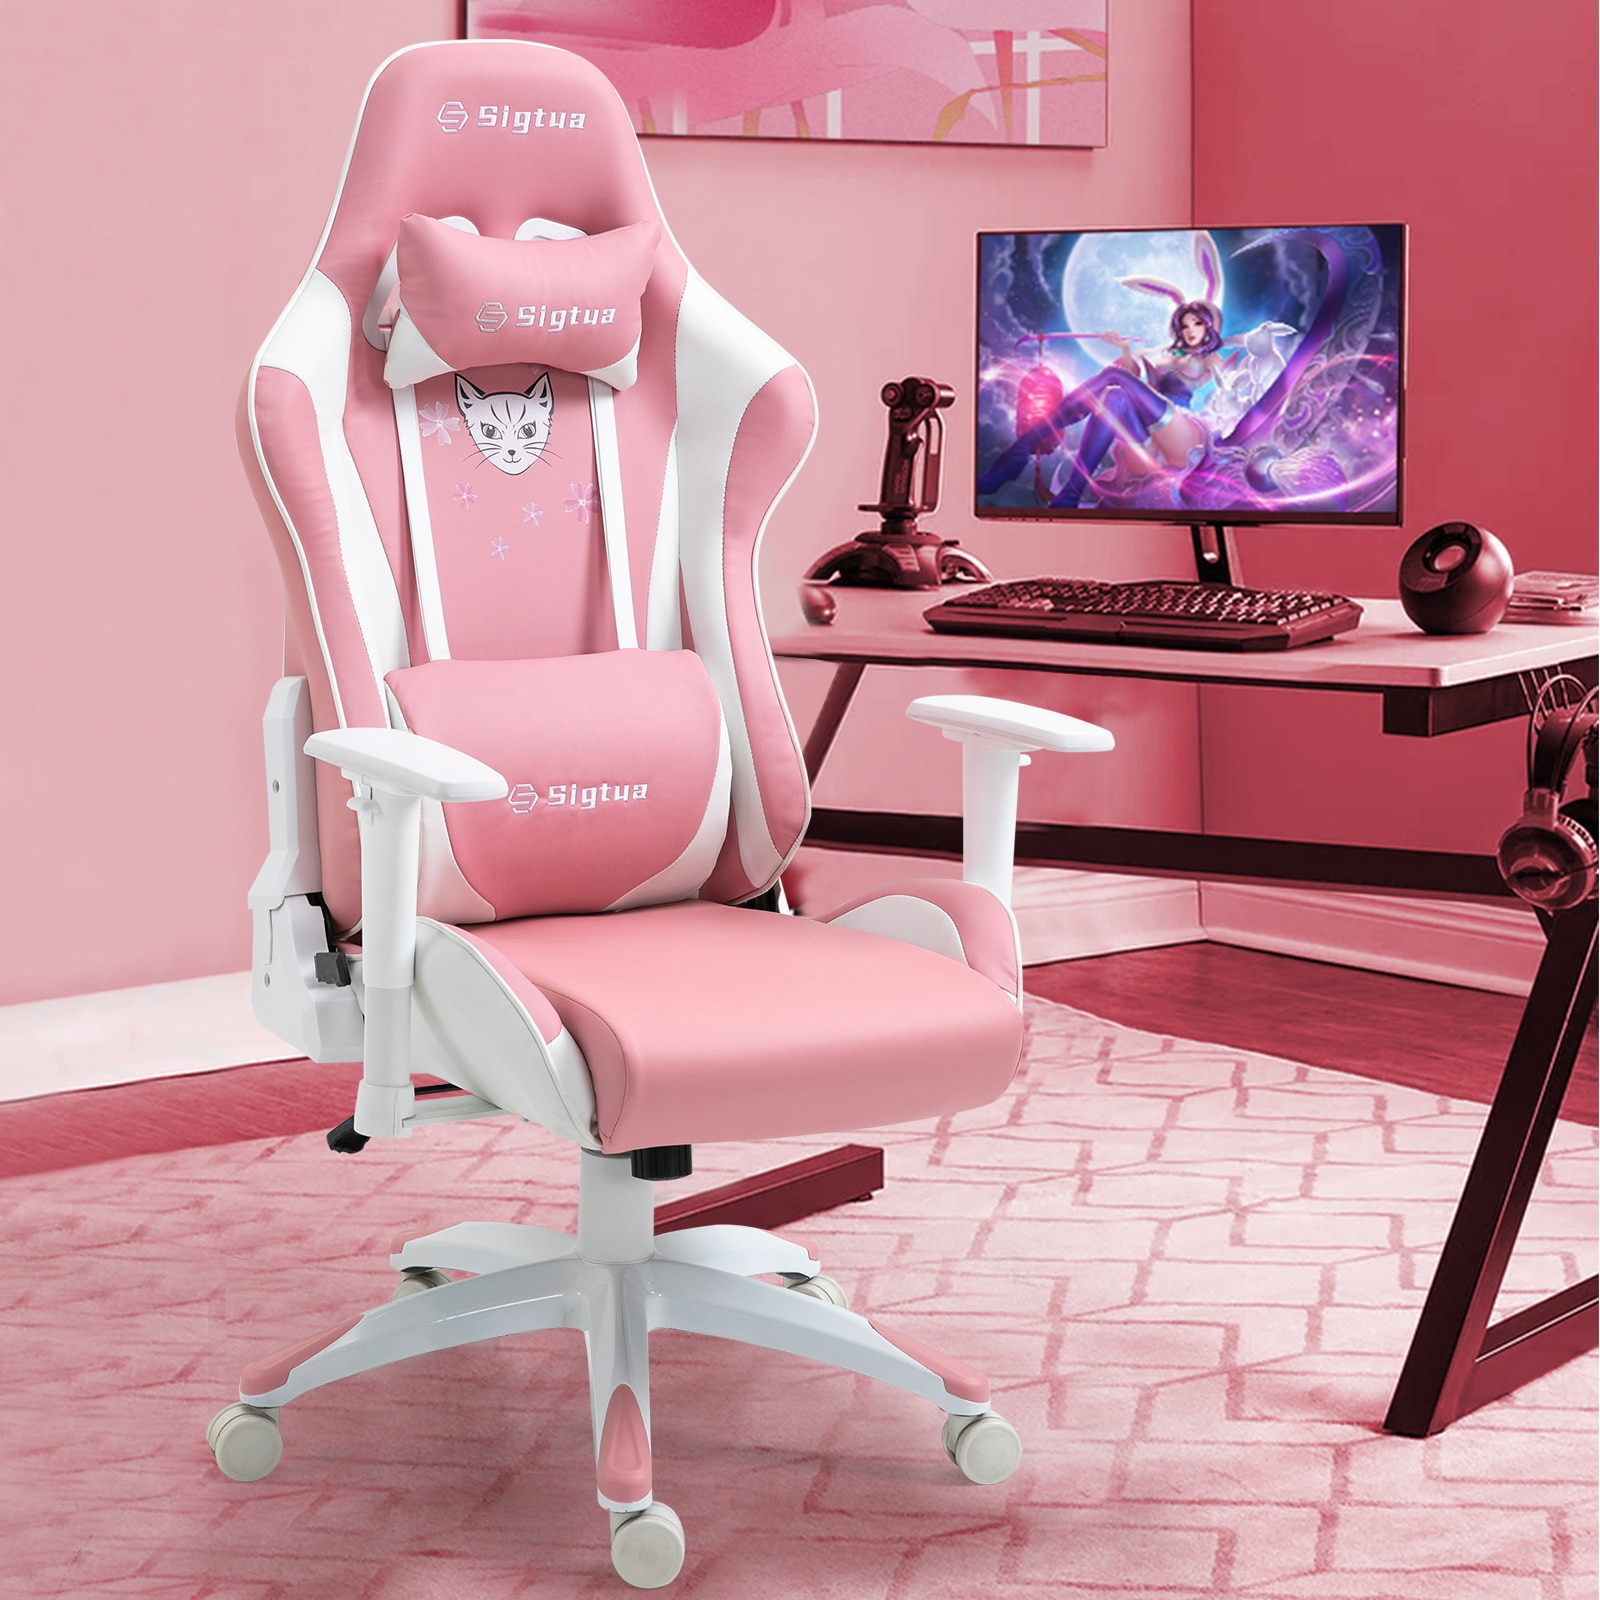 H9ab20e58c6d445b5b5567ce0b5411a06j - Sigtua Pink Gaming Office Chair Height-adjustable Armrests Computer Chair Ergonomic Swivel Executive Chair with High Backrest